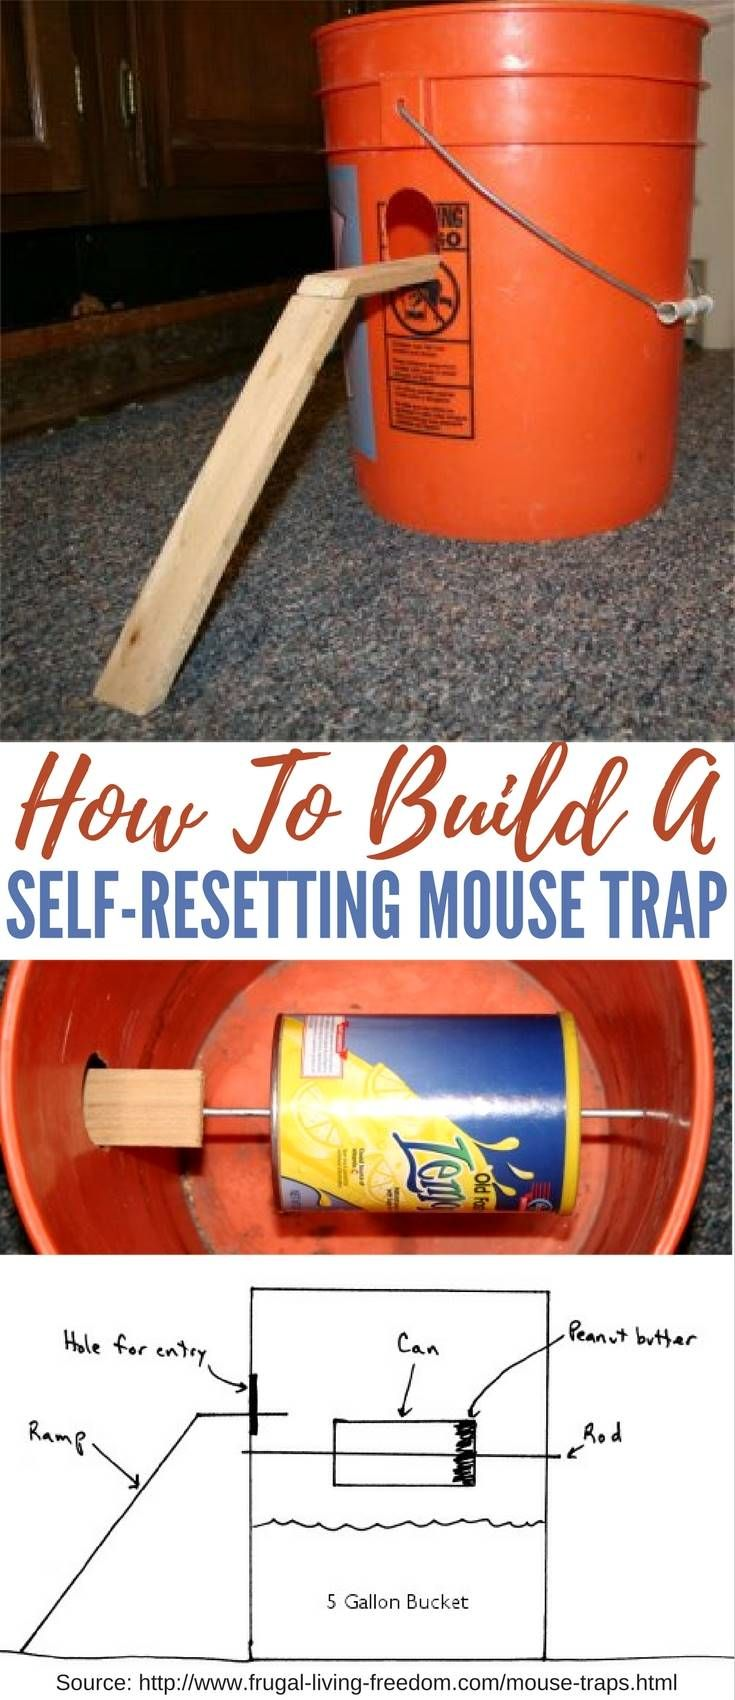 How To Build A Self-Resetting Mouse Trap - SHTFPreparedness